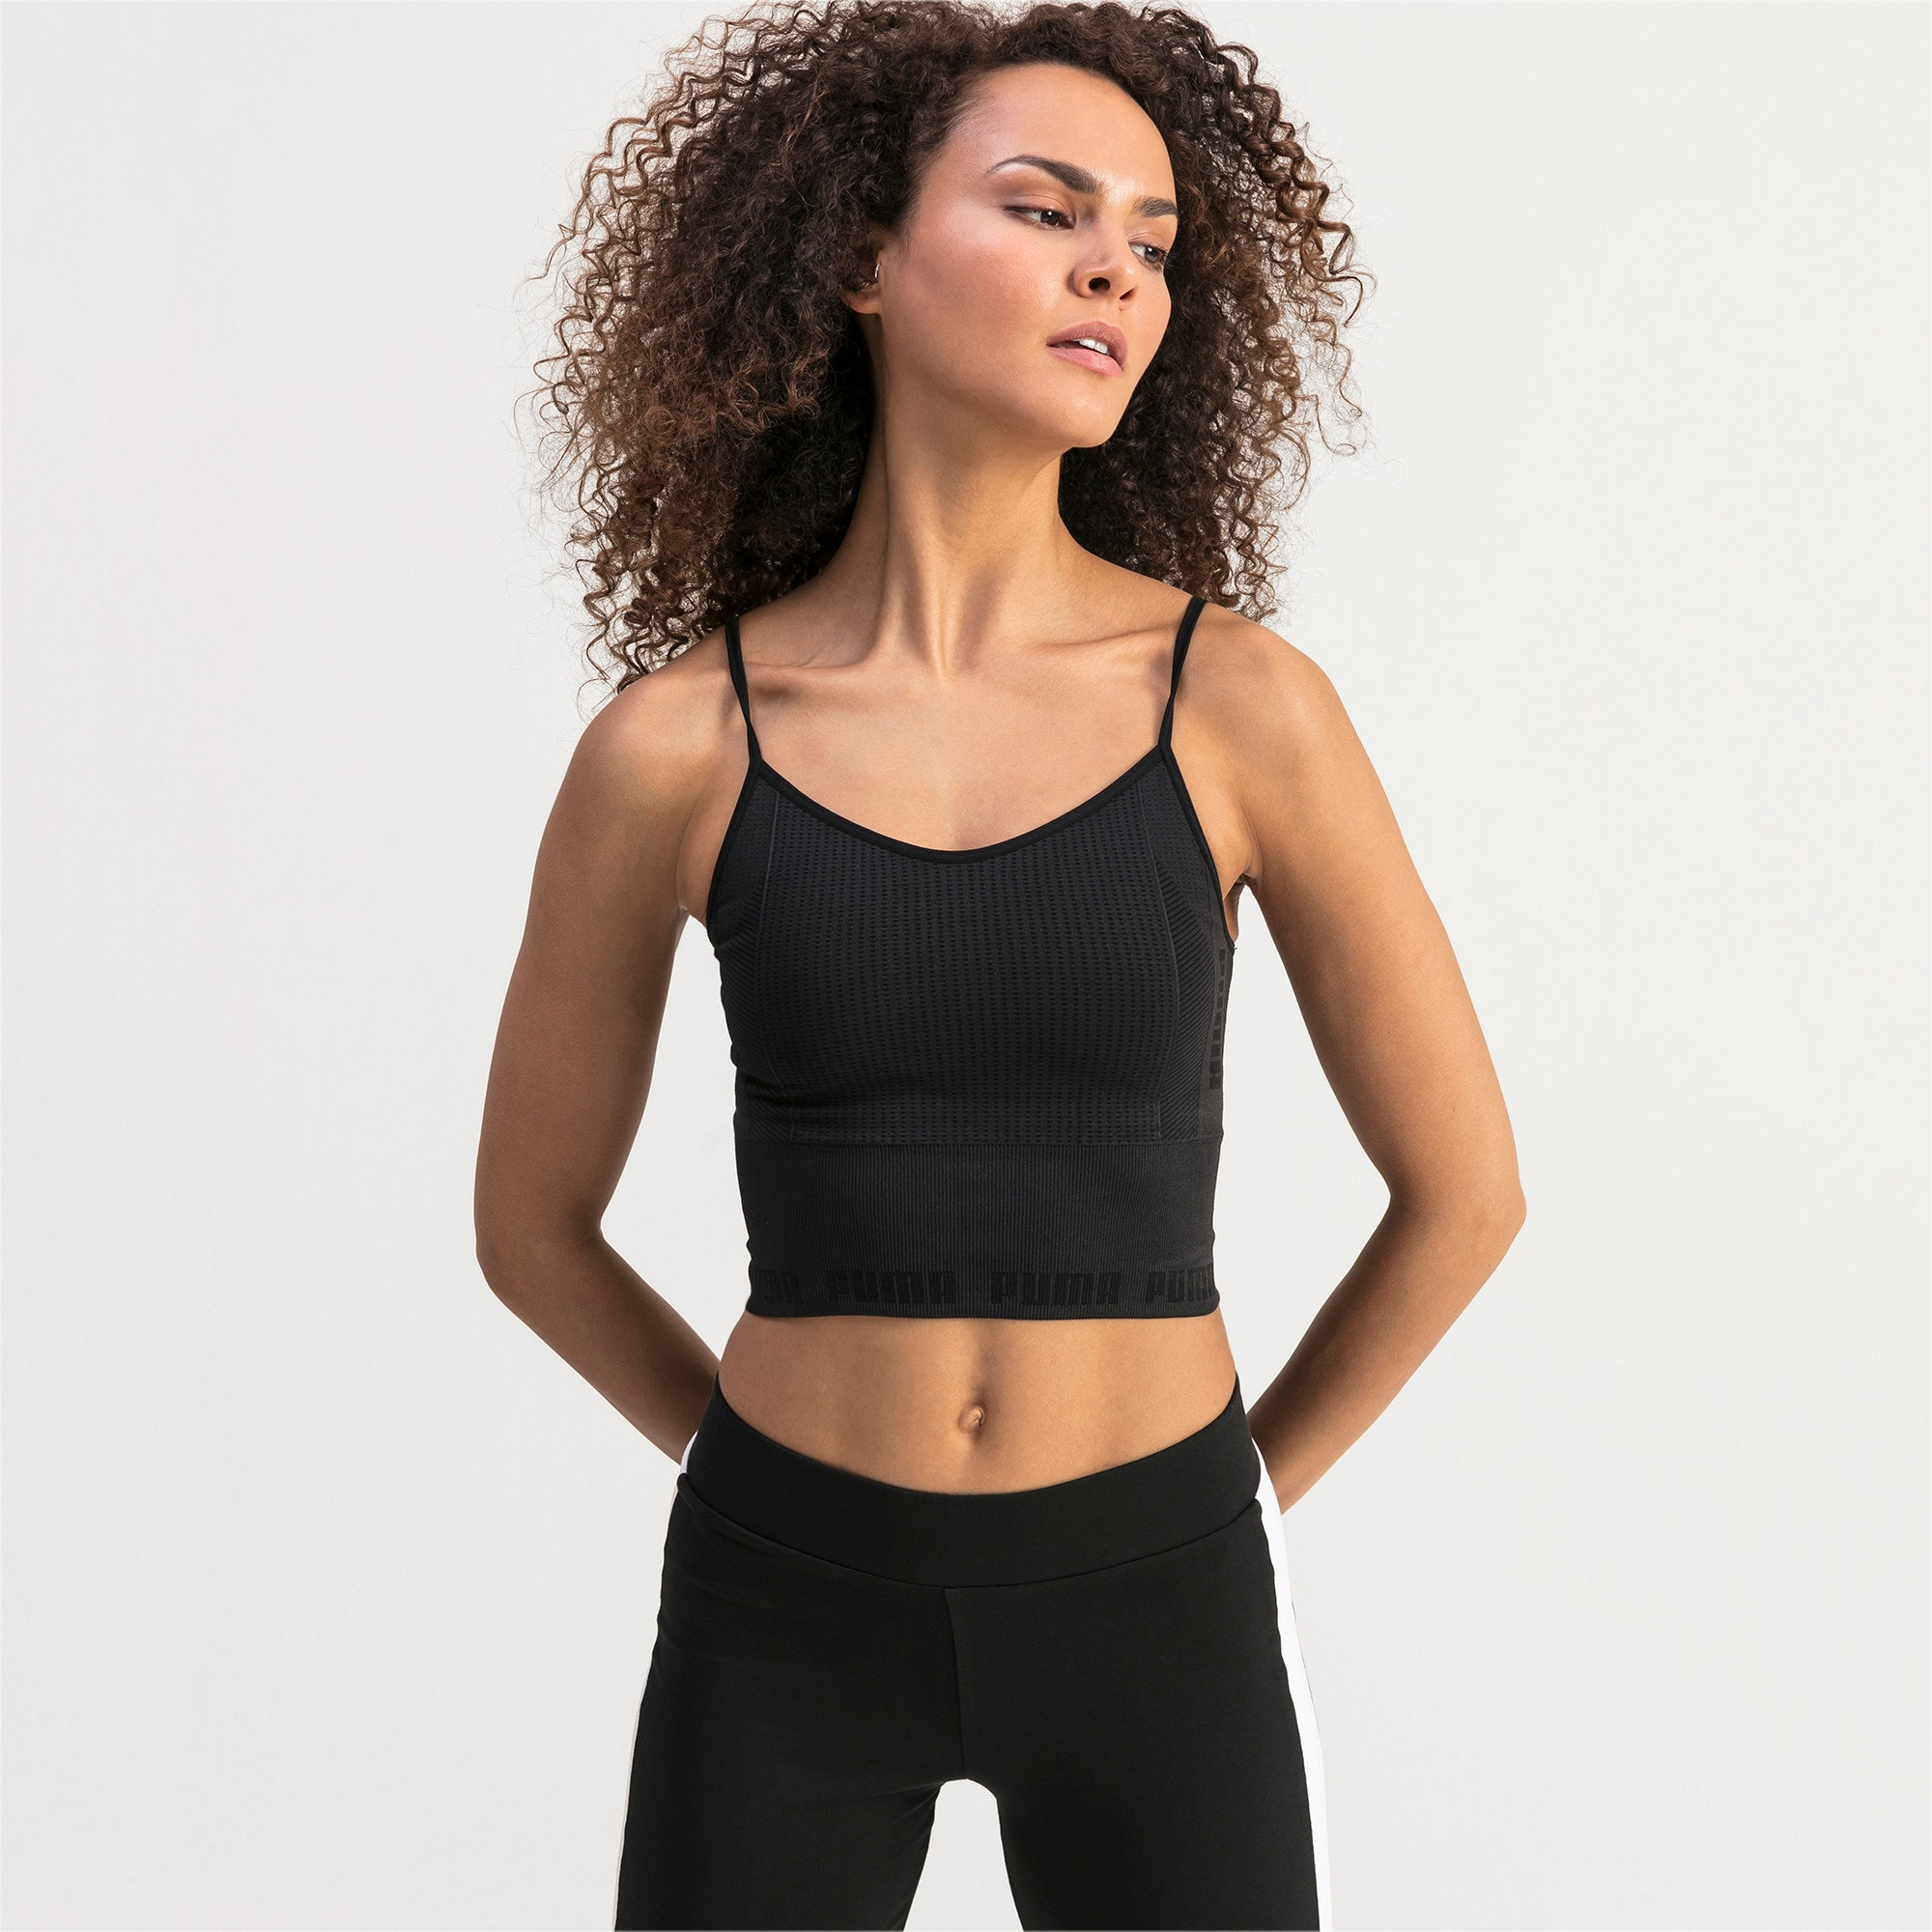 Thumbnail 1 of evoKNIT Seamless Women's Crop Top, Puma Black, medium